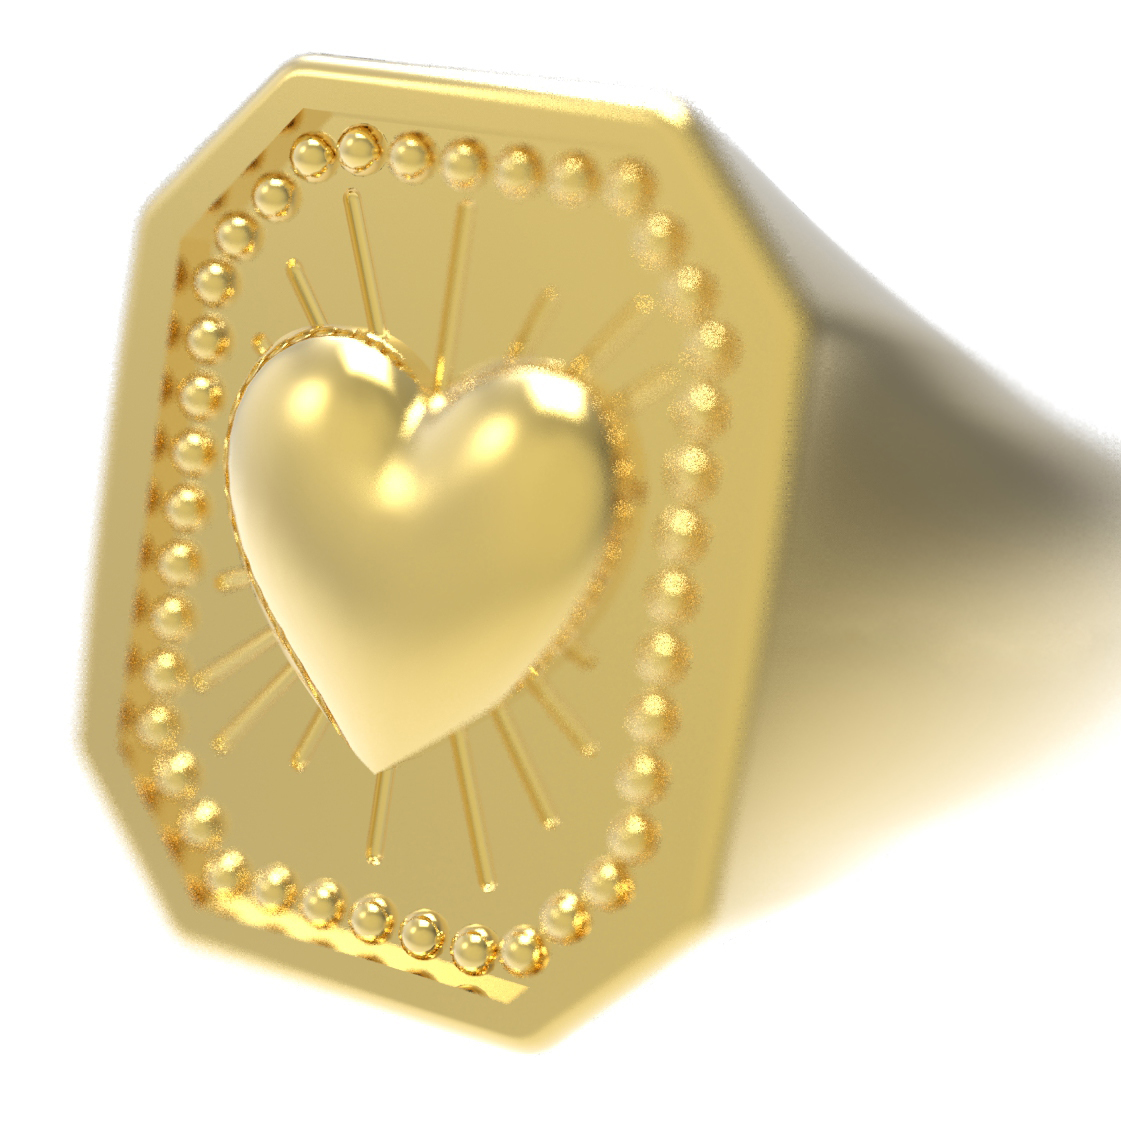 render_6.jpg Download free STL file CRUSH LOVE CHEVALIER RING • 3D printable object, Genny